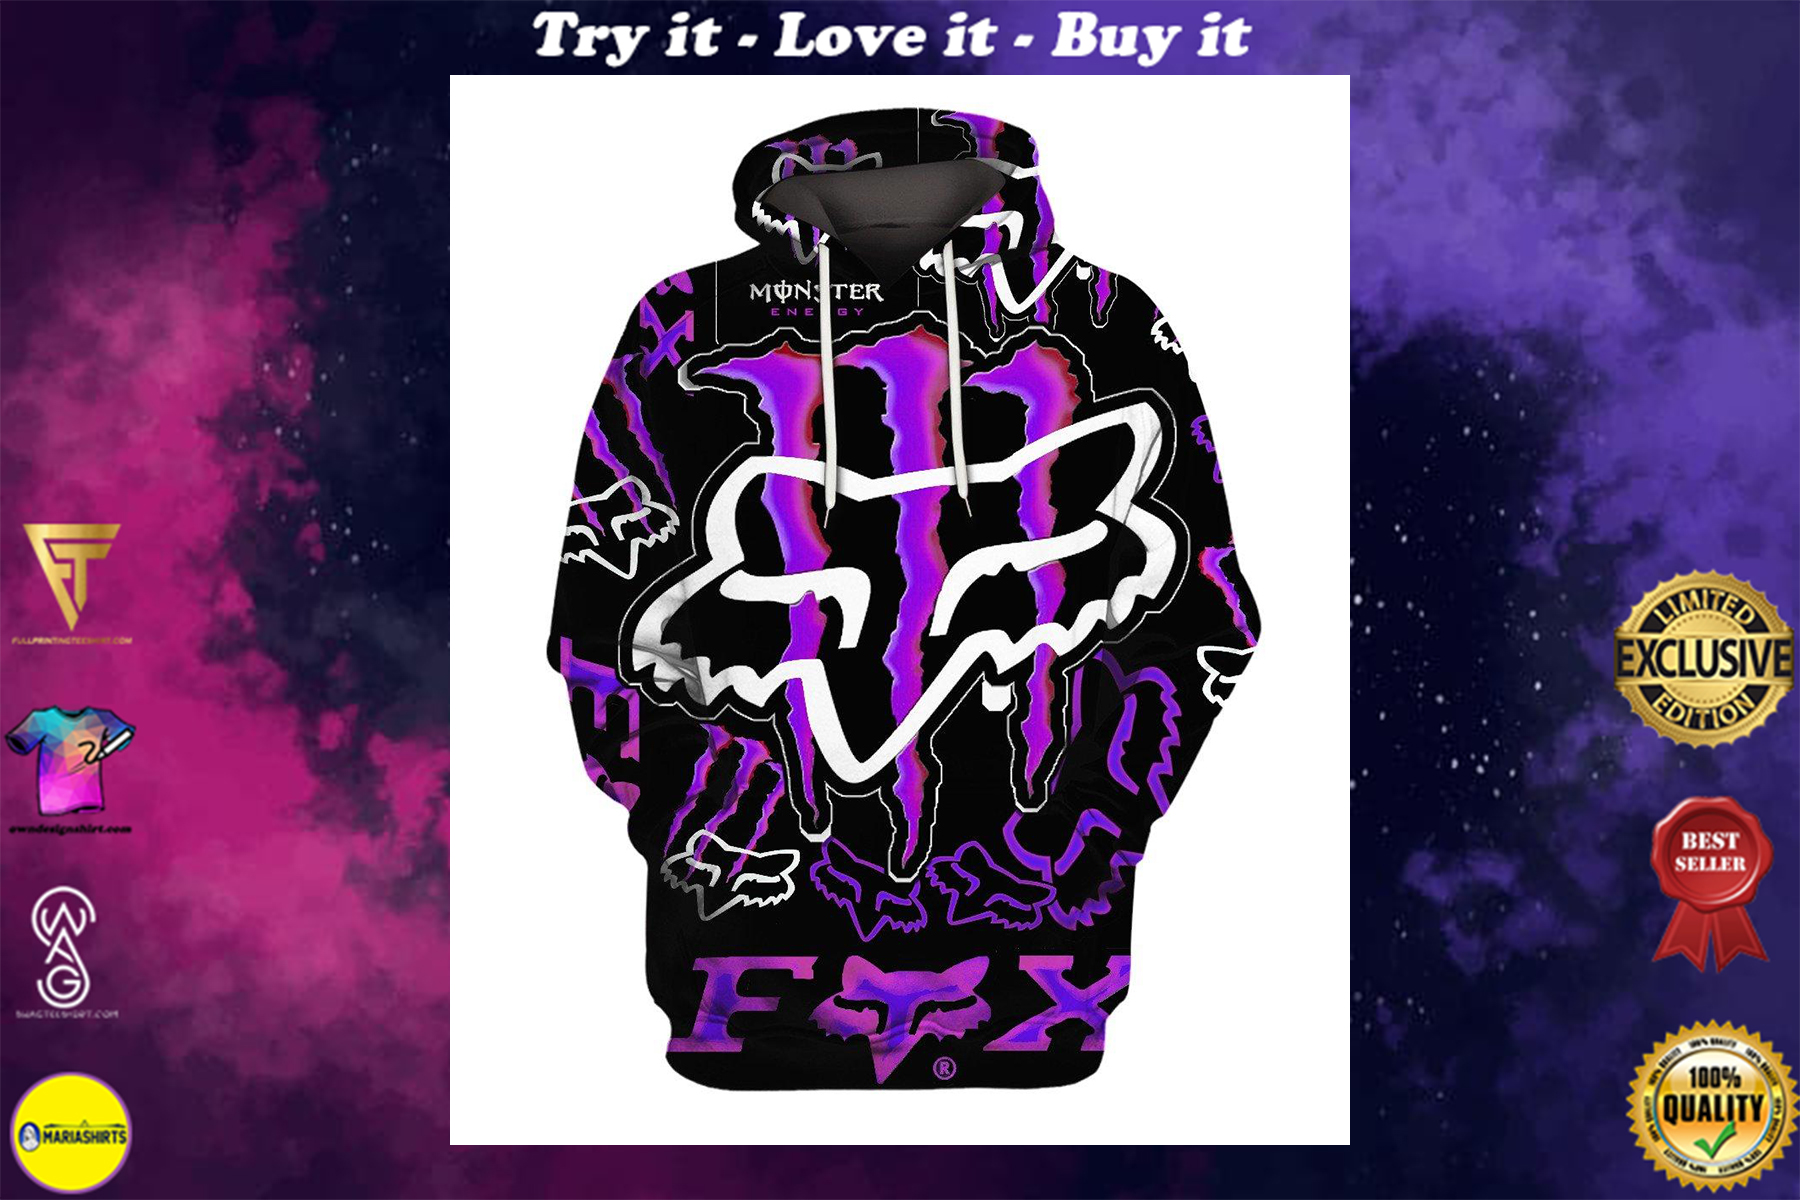 [special edition] fox racing and monster energy purple full over printed shirt - maria